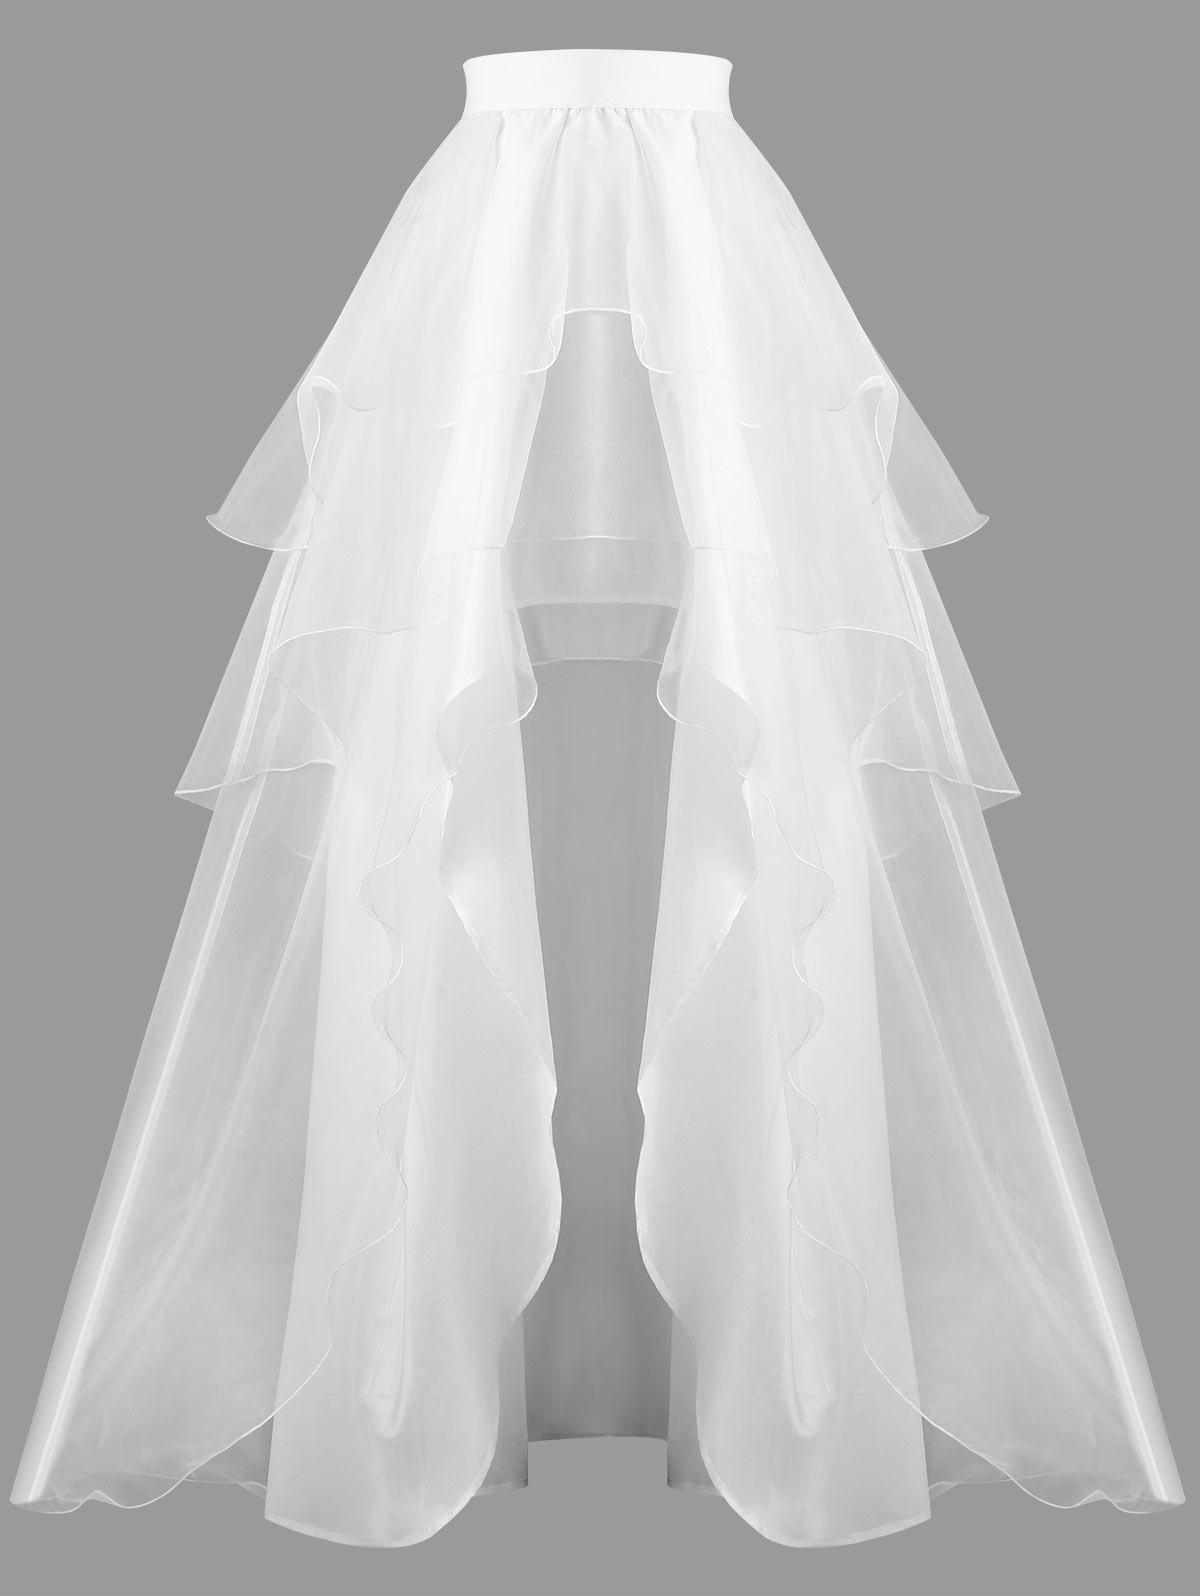 2018 High Waist Layered Ball Gown Skirt In White M | Rosegal.com